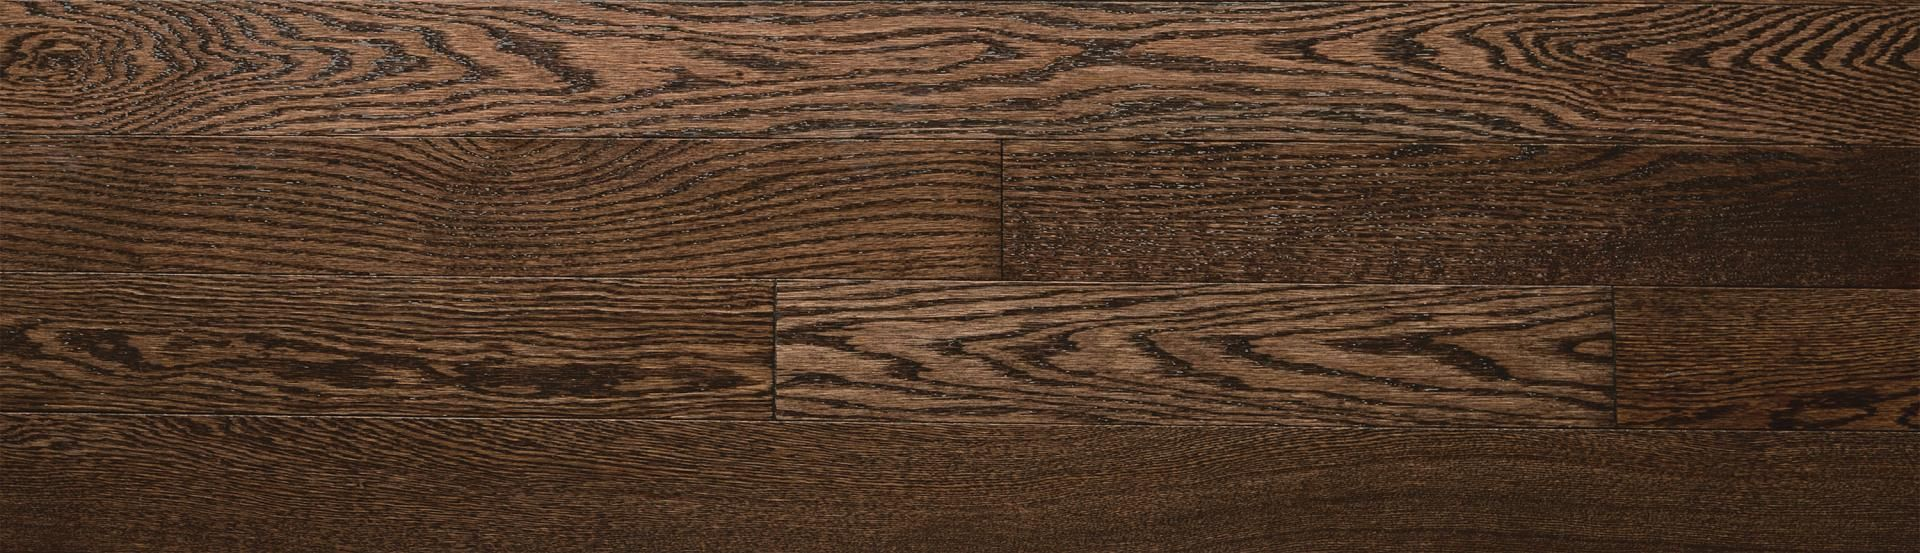 Another Chocolate Red Oak Hardwood Flooring From Lauzon Flooring Essential  Collection. #interiordesign #homedecor